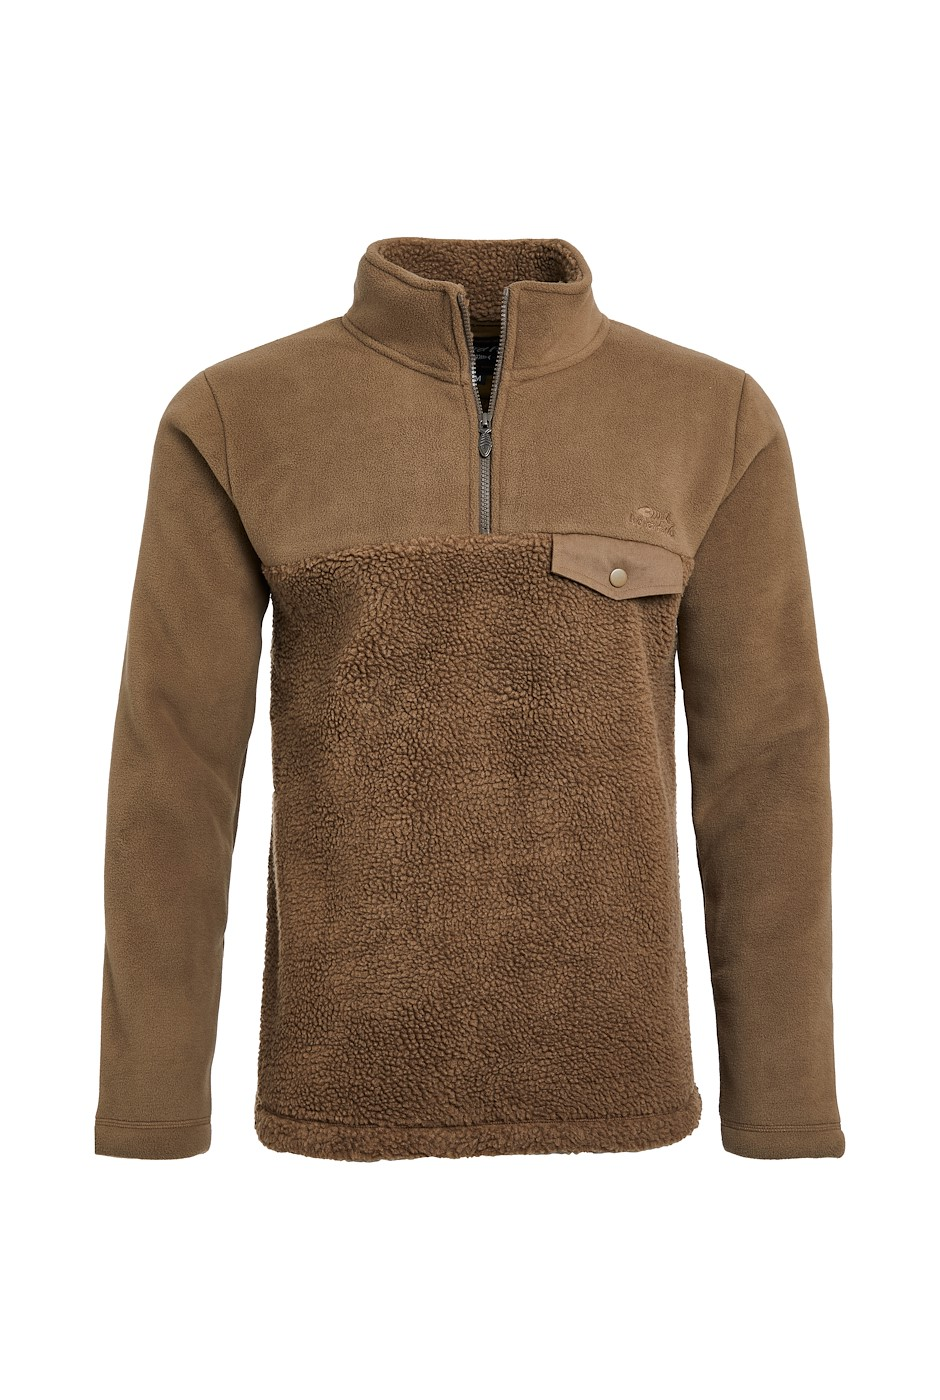 Atmore Recycled 1/4 Zip Panelled Borg Fleece Cola